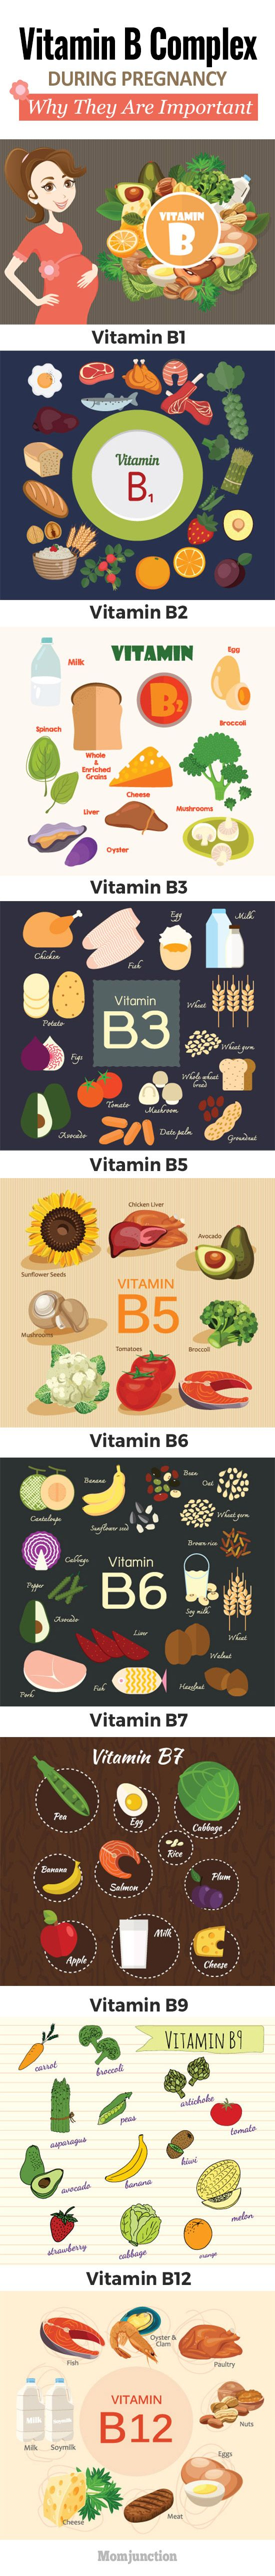 Cong! It's time for you to pile B vitamins. Before that, read to know why Vitamin B complex during pregnancy are so important to include every day.